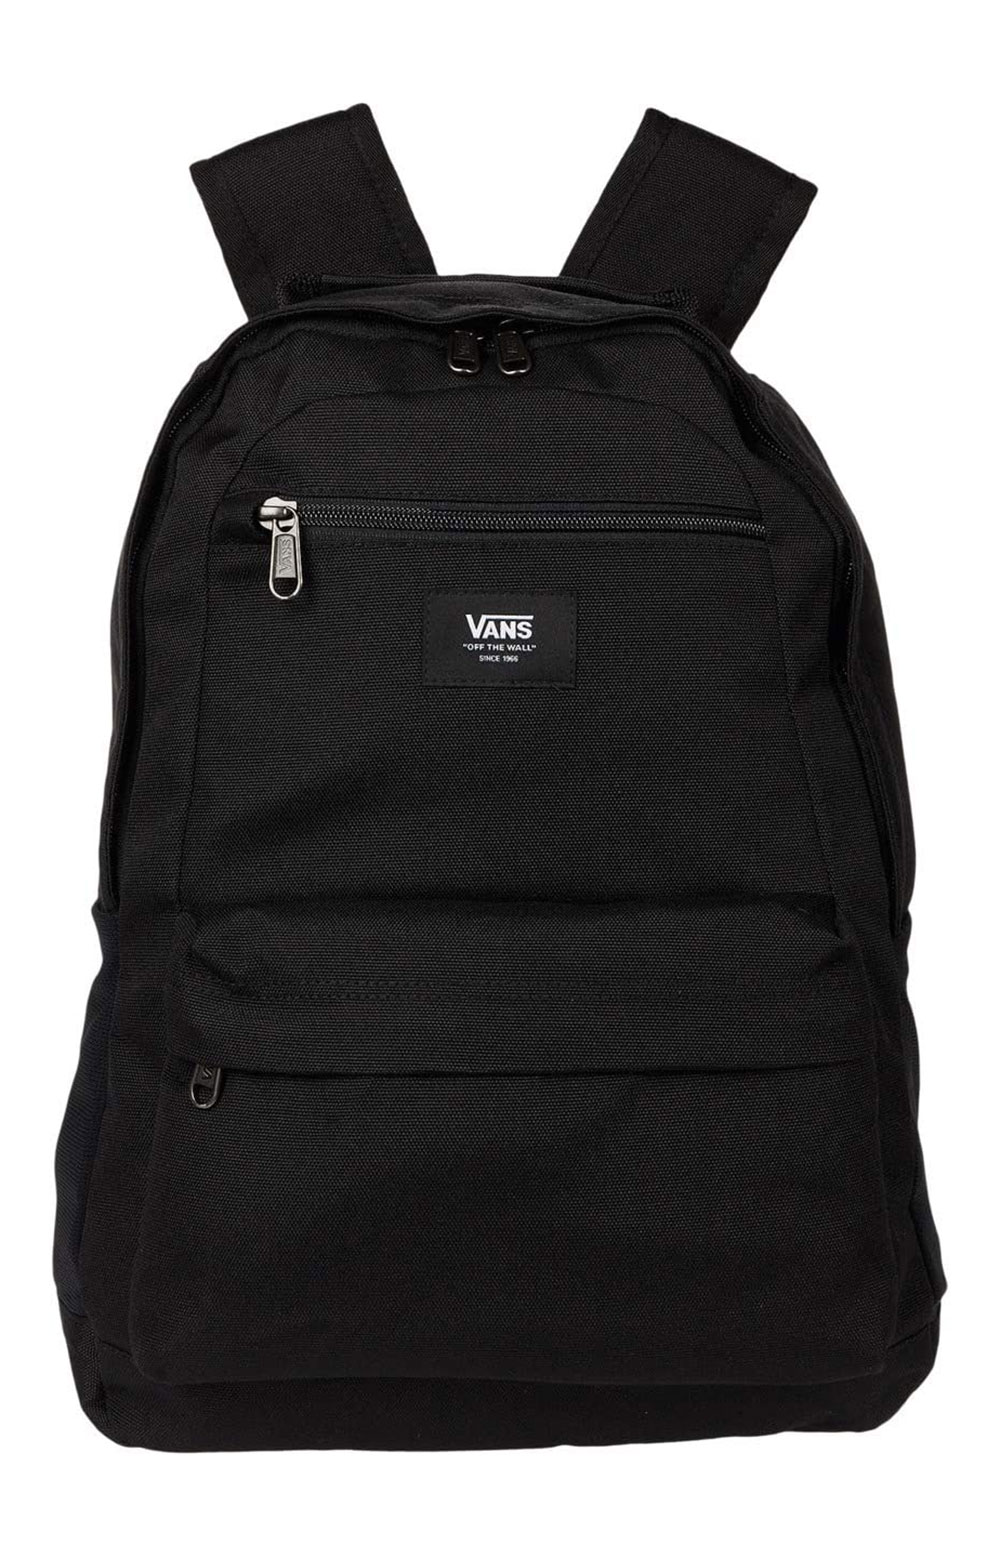 Startle Backpack - Black